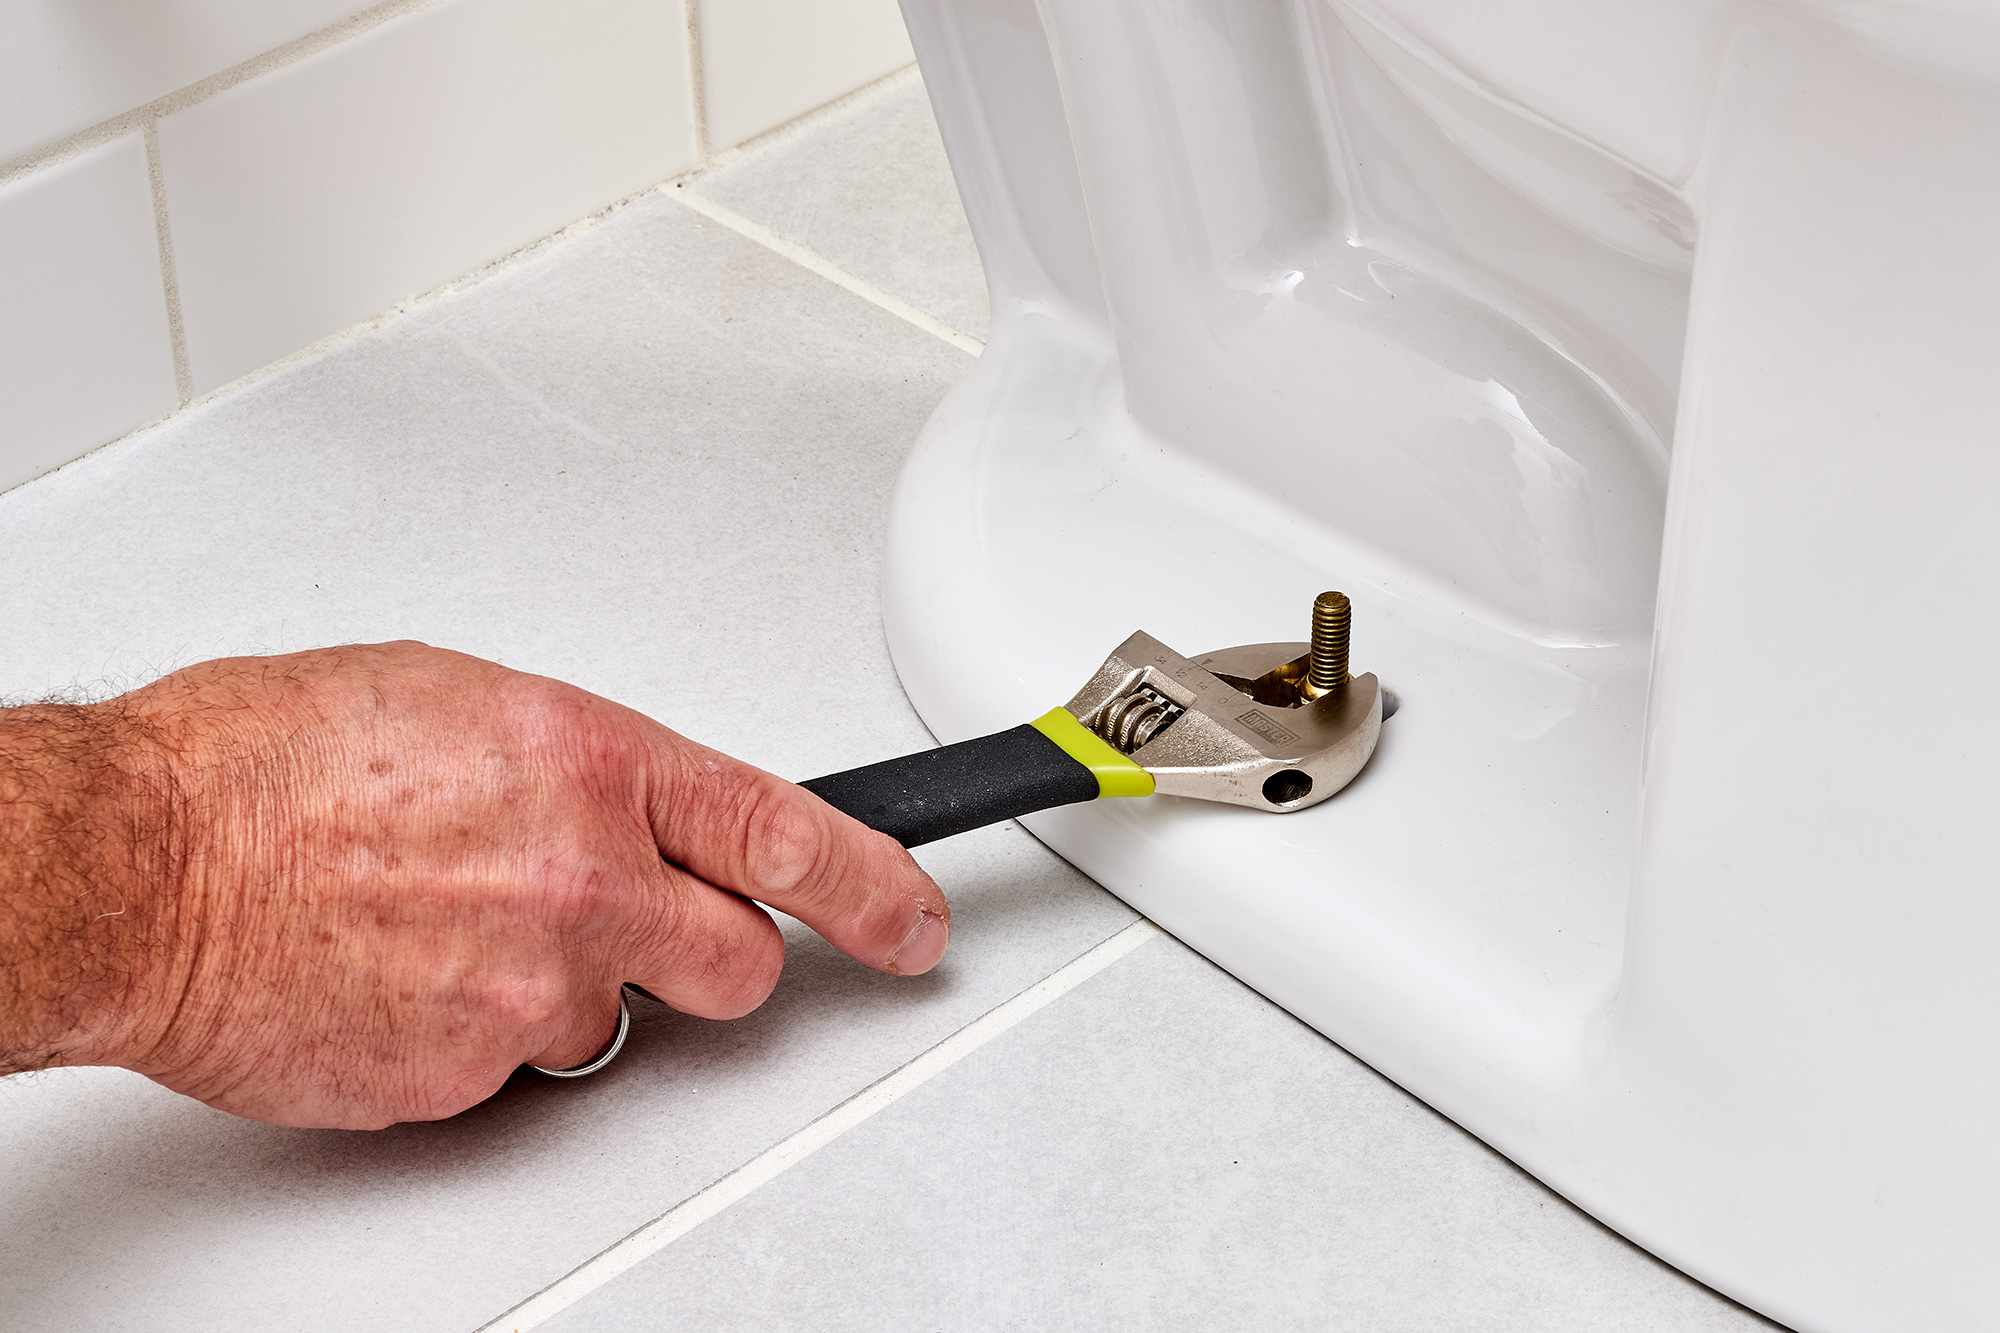 Bolts tightened with wrench to secure toilet to floor